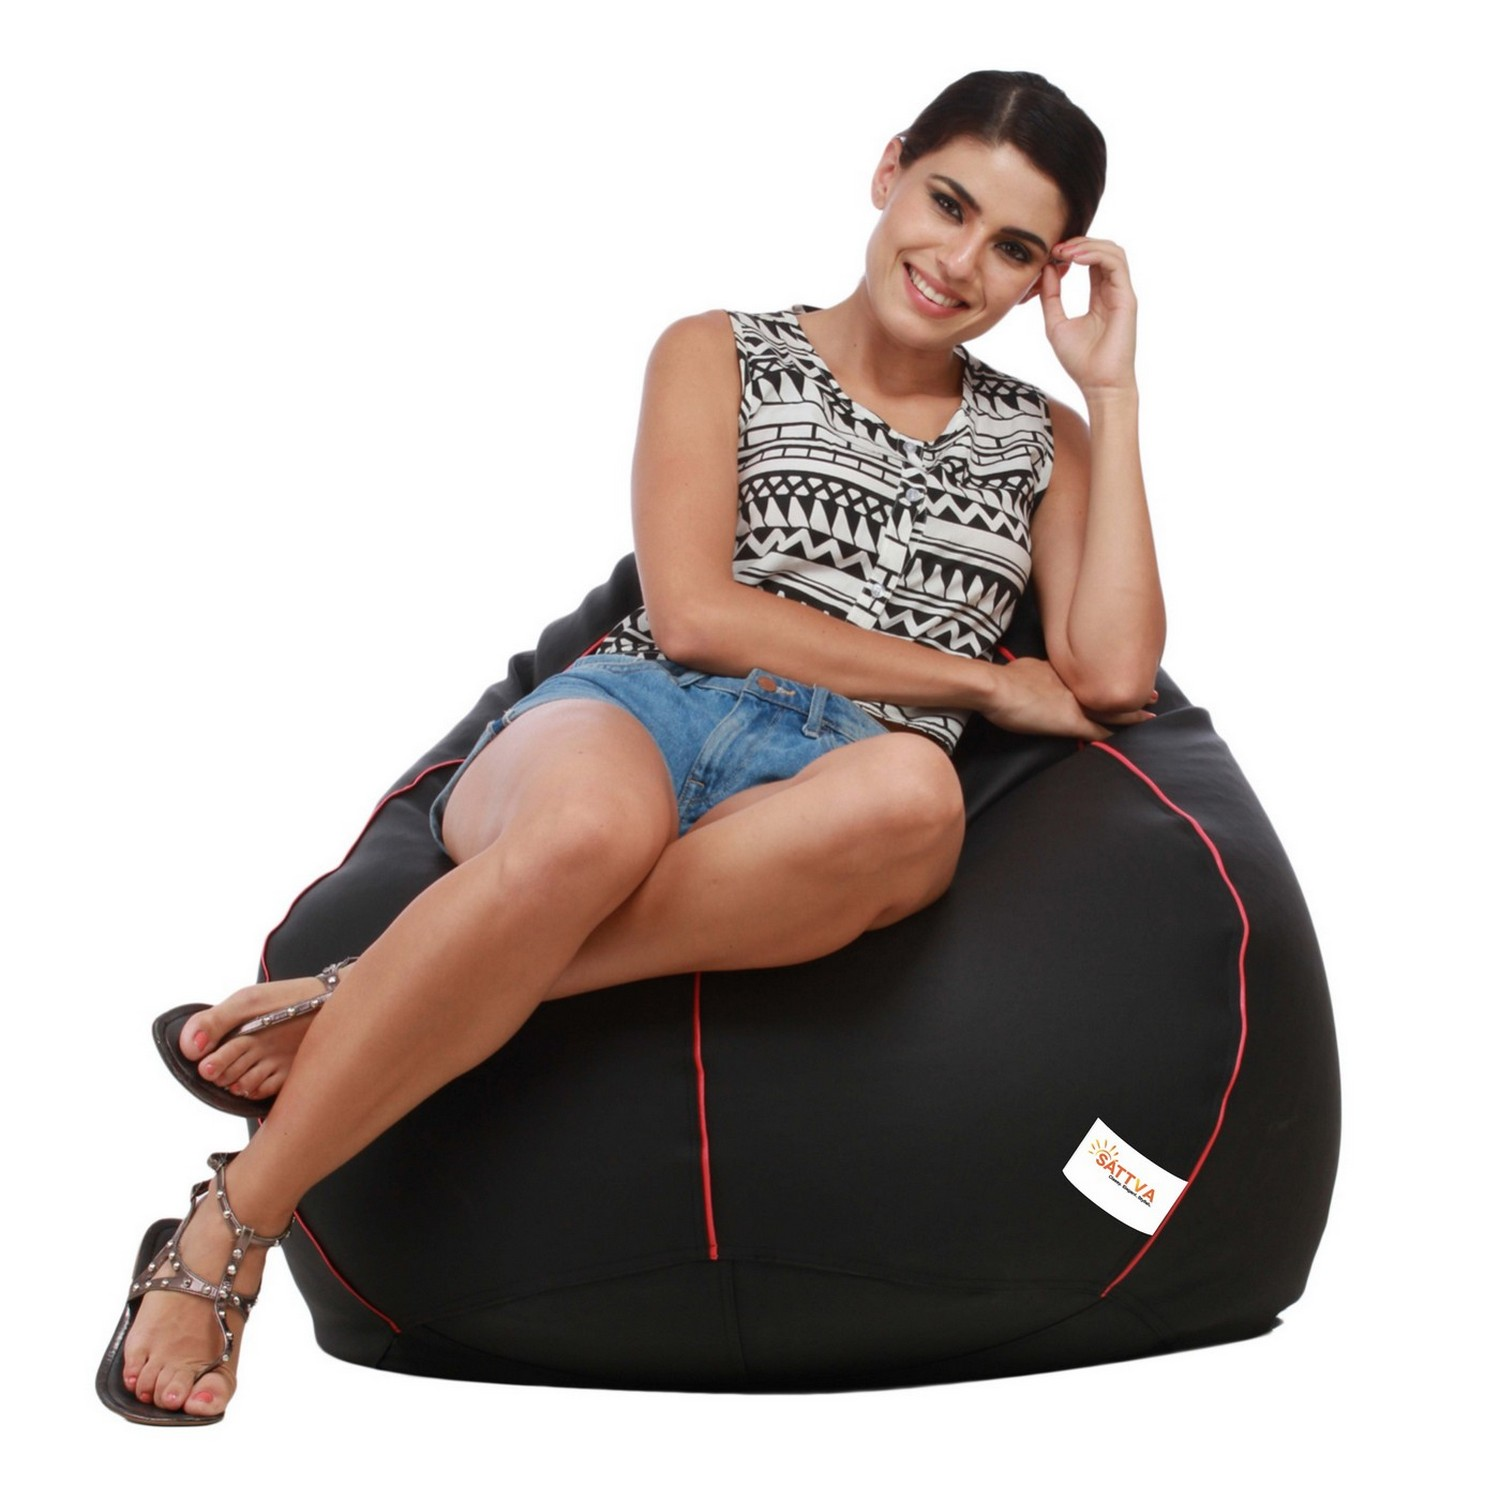 Sattva Combo Classic Bean Bag And Round Foostool-(Filled) Black With Pink Piping - XL (Black With Pink Piping,XXXL)